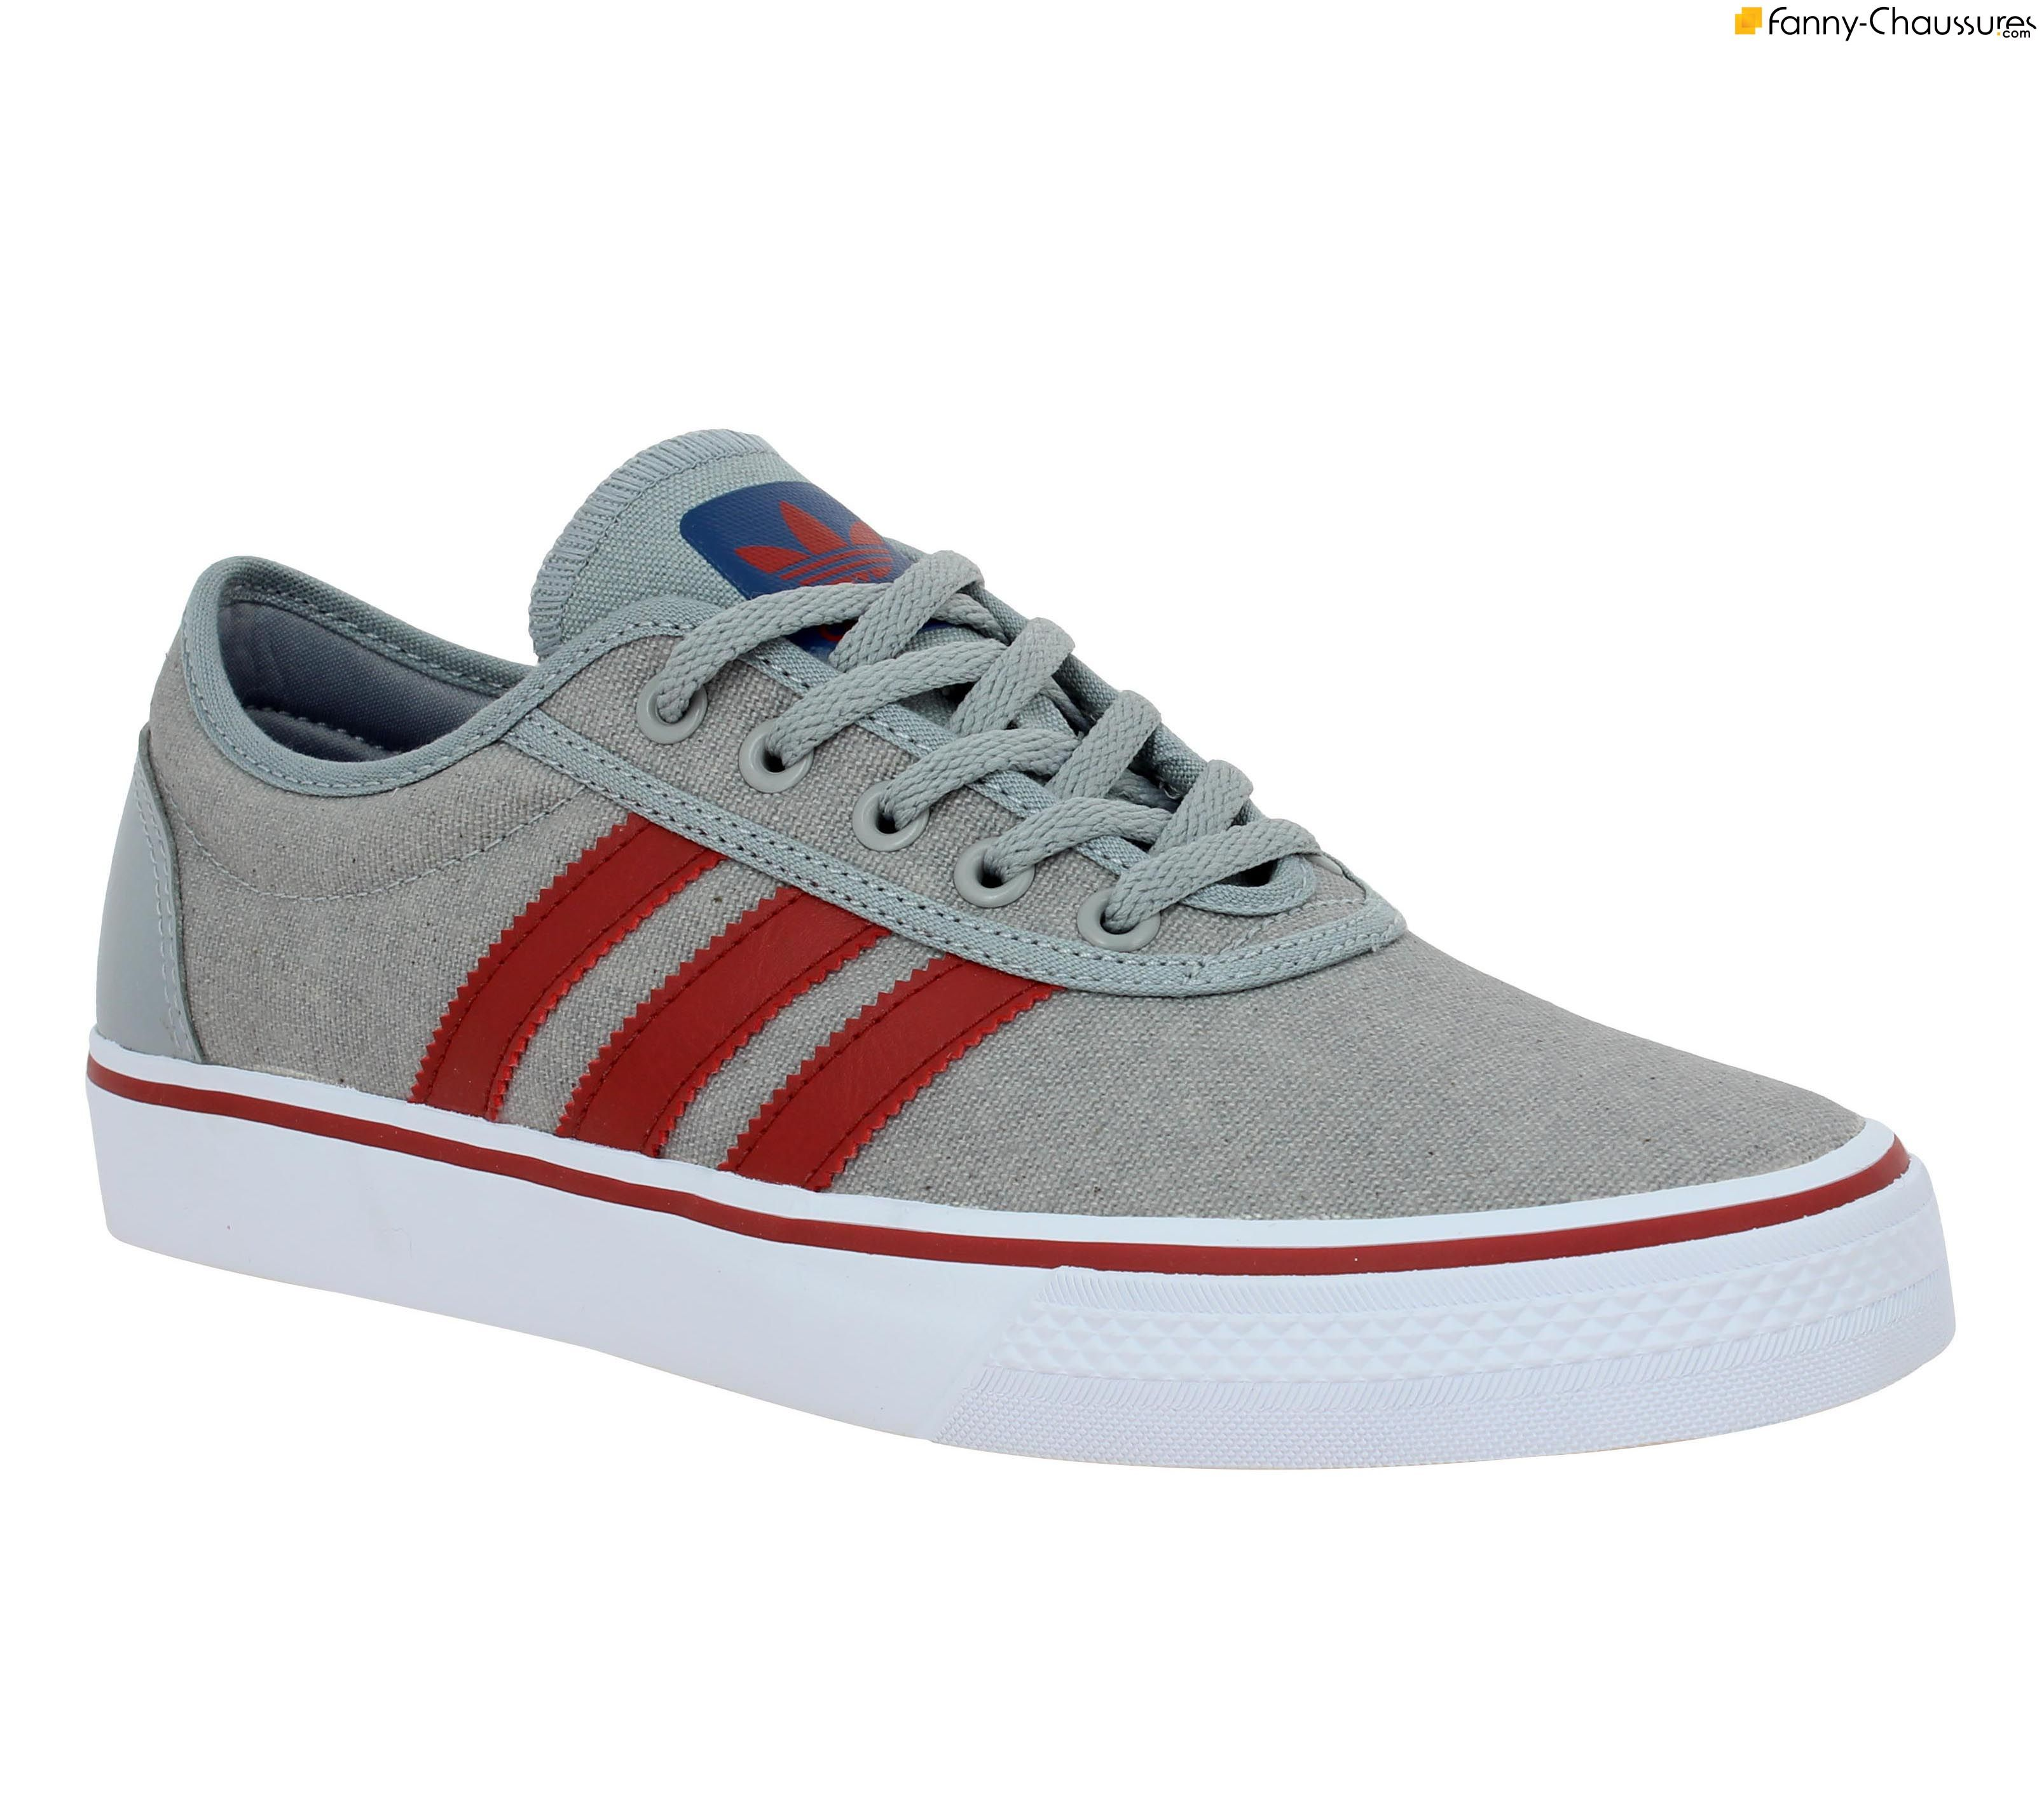 Chaussures pour homme Adidas | Chaussures Adidas